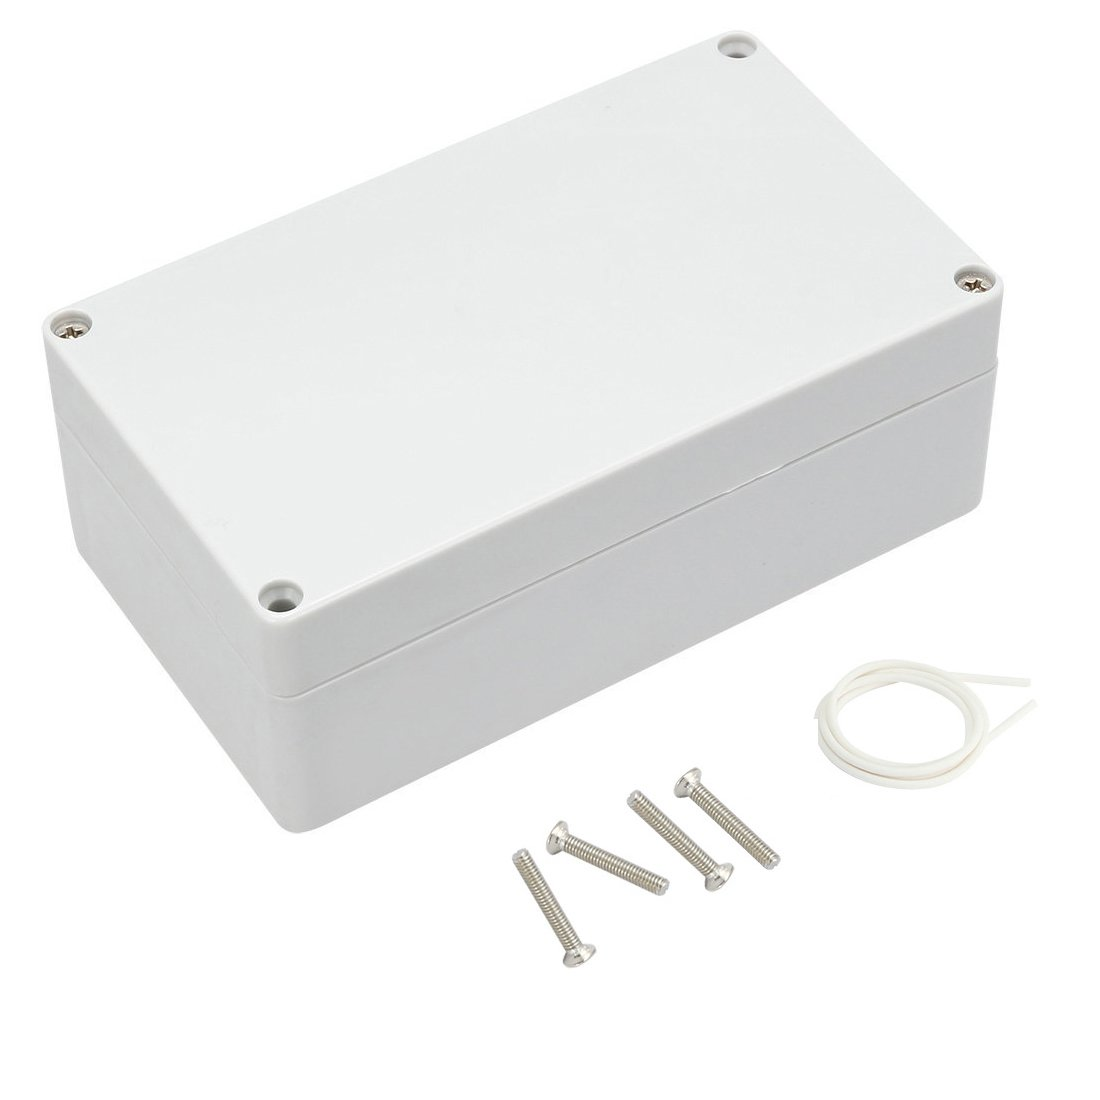 83mmx58mmx33mm Awclub Waterproof Dustproof IP65 ABS Plastic Junction Box Outdoor Universal Electric Project Enclosure Gray 3.3x2.3x1.3